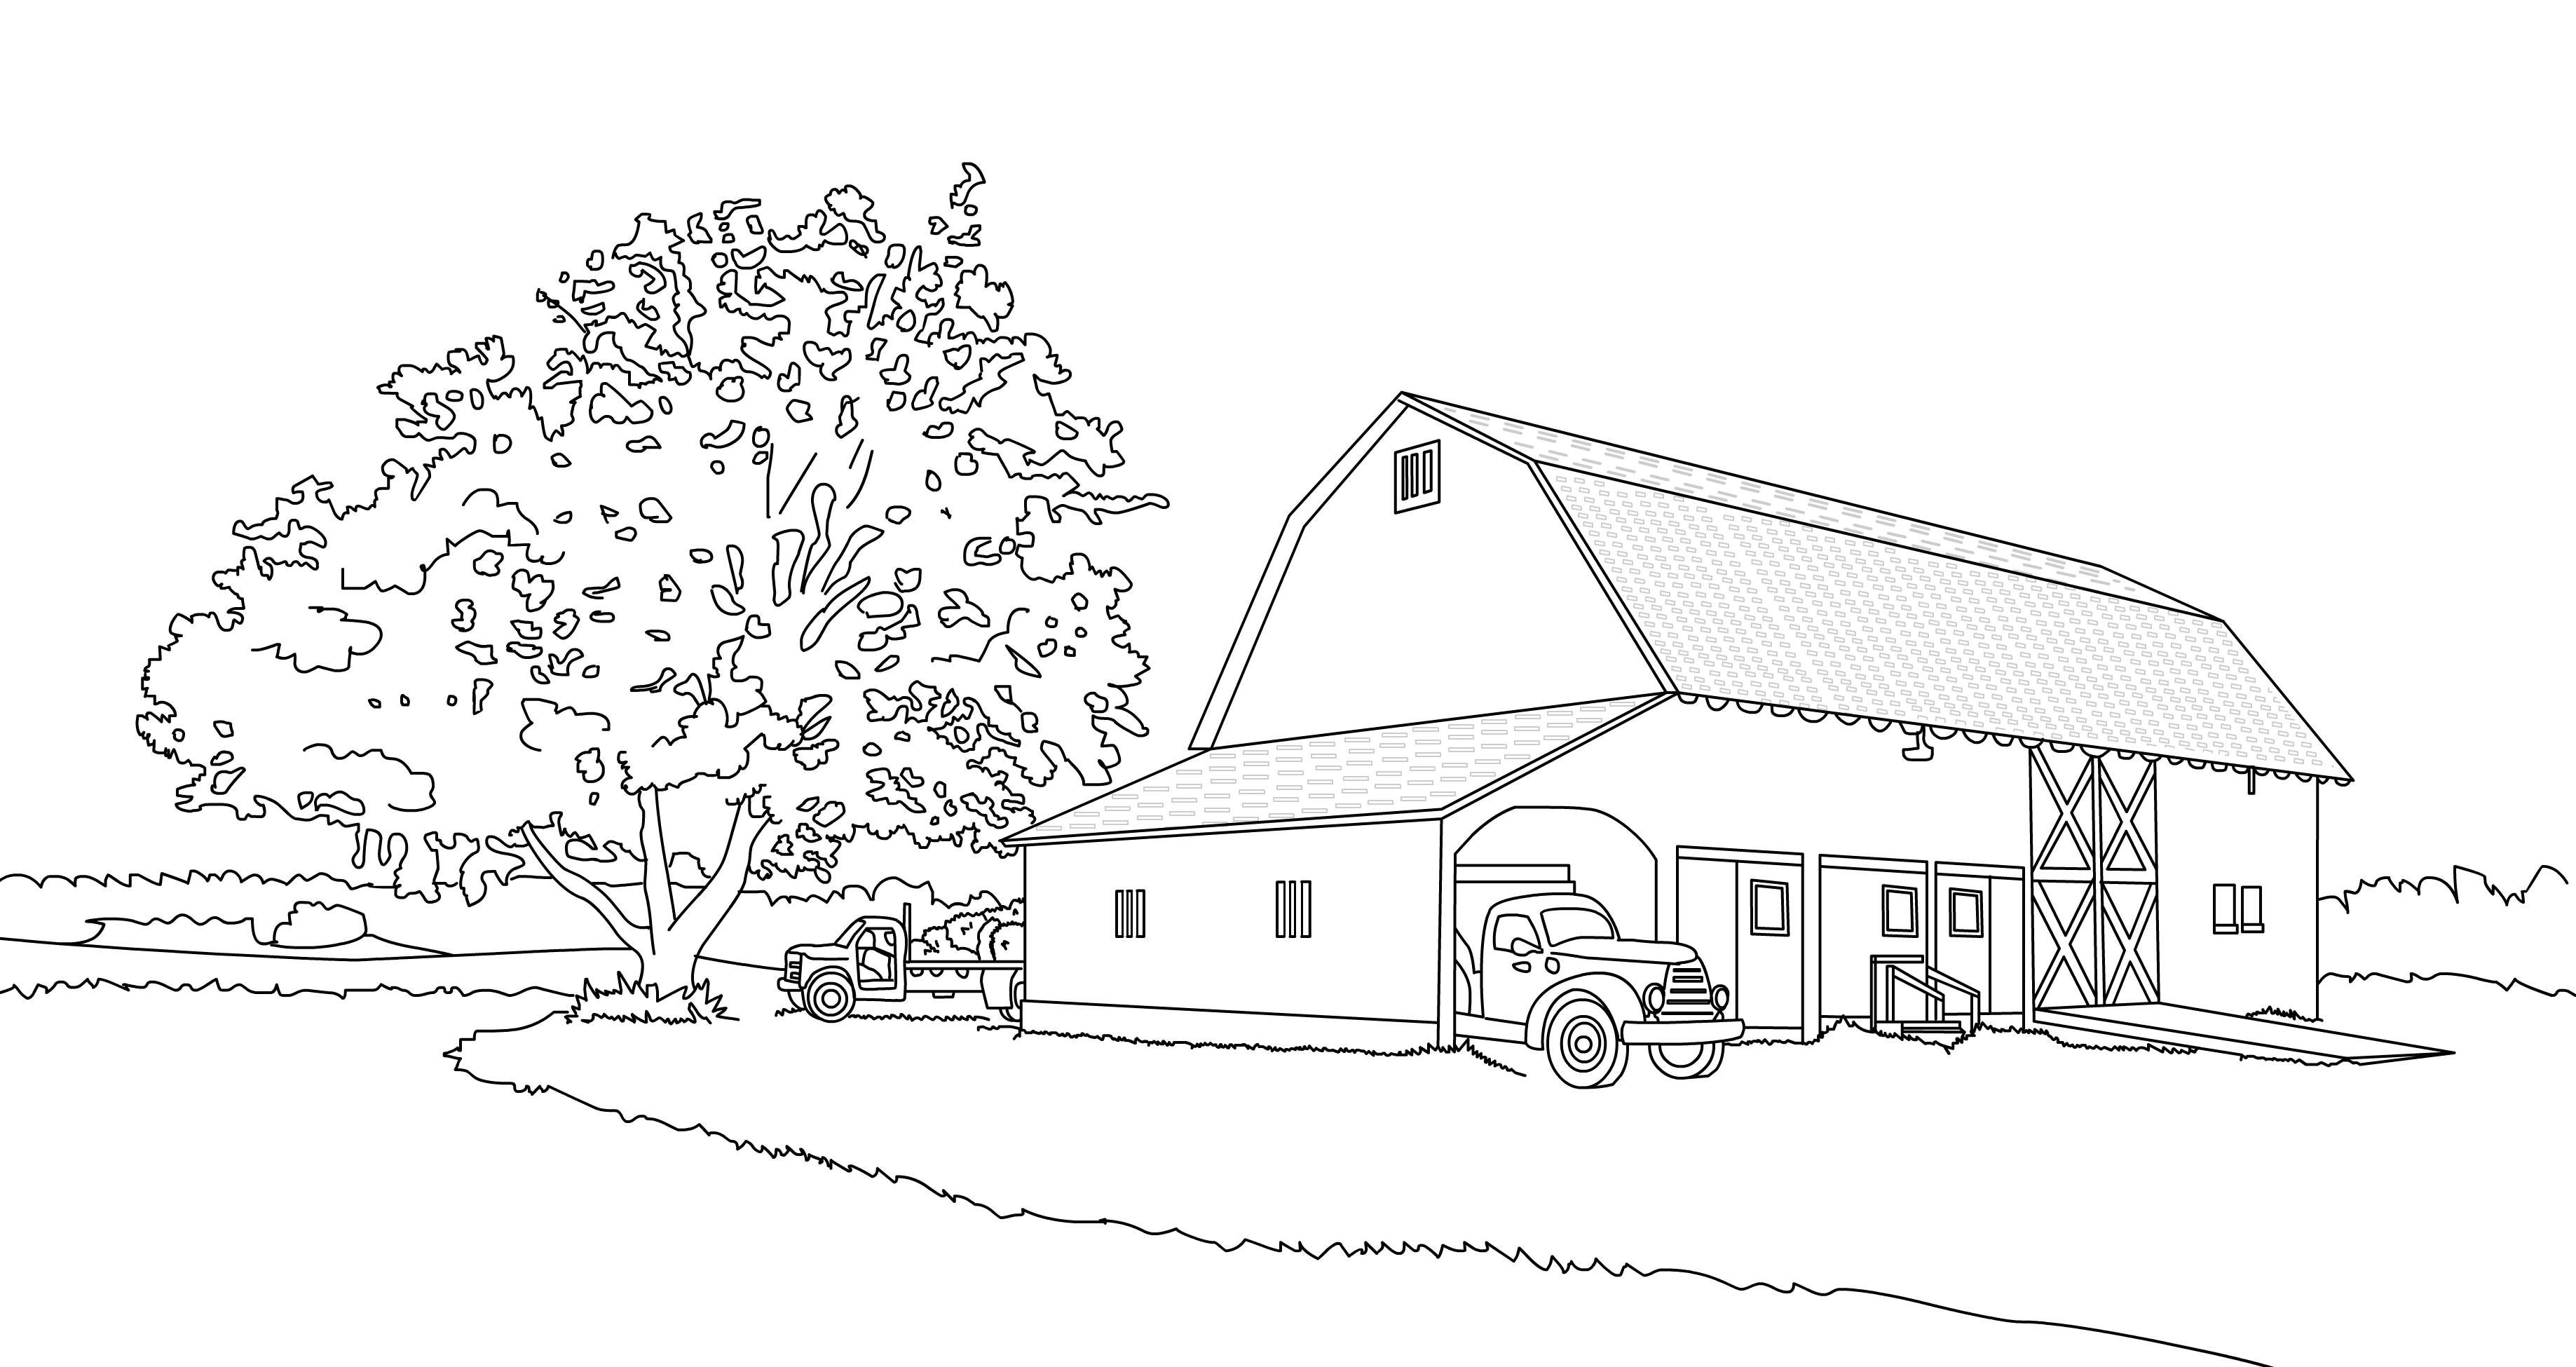 Drawing - Hallockville Farm